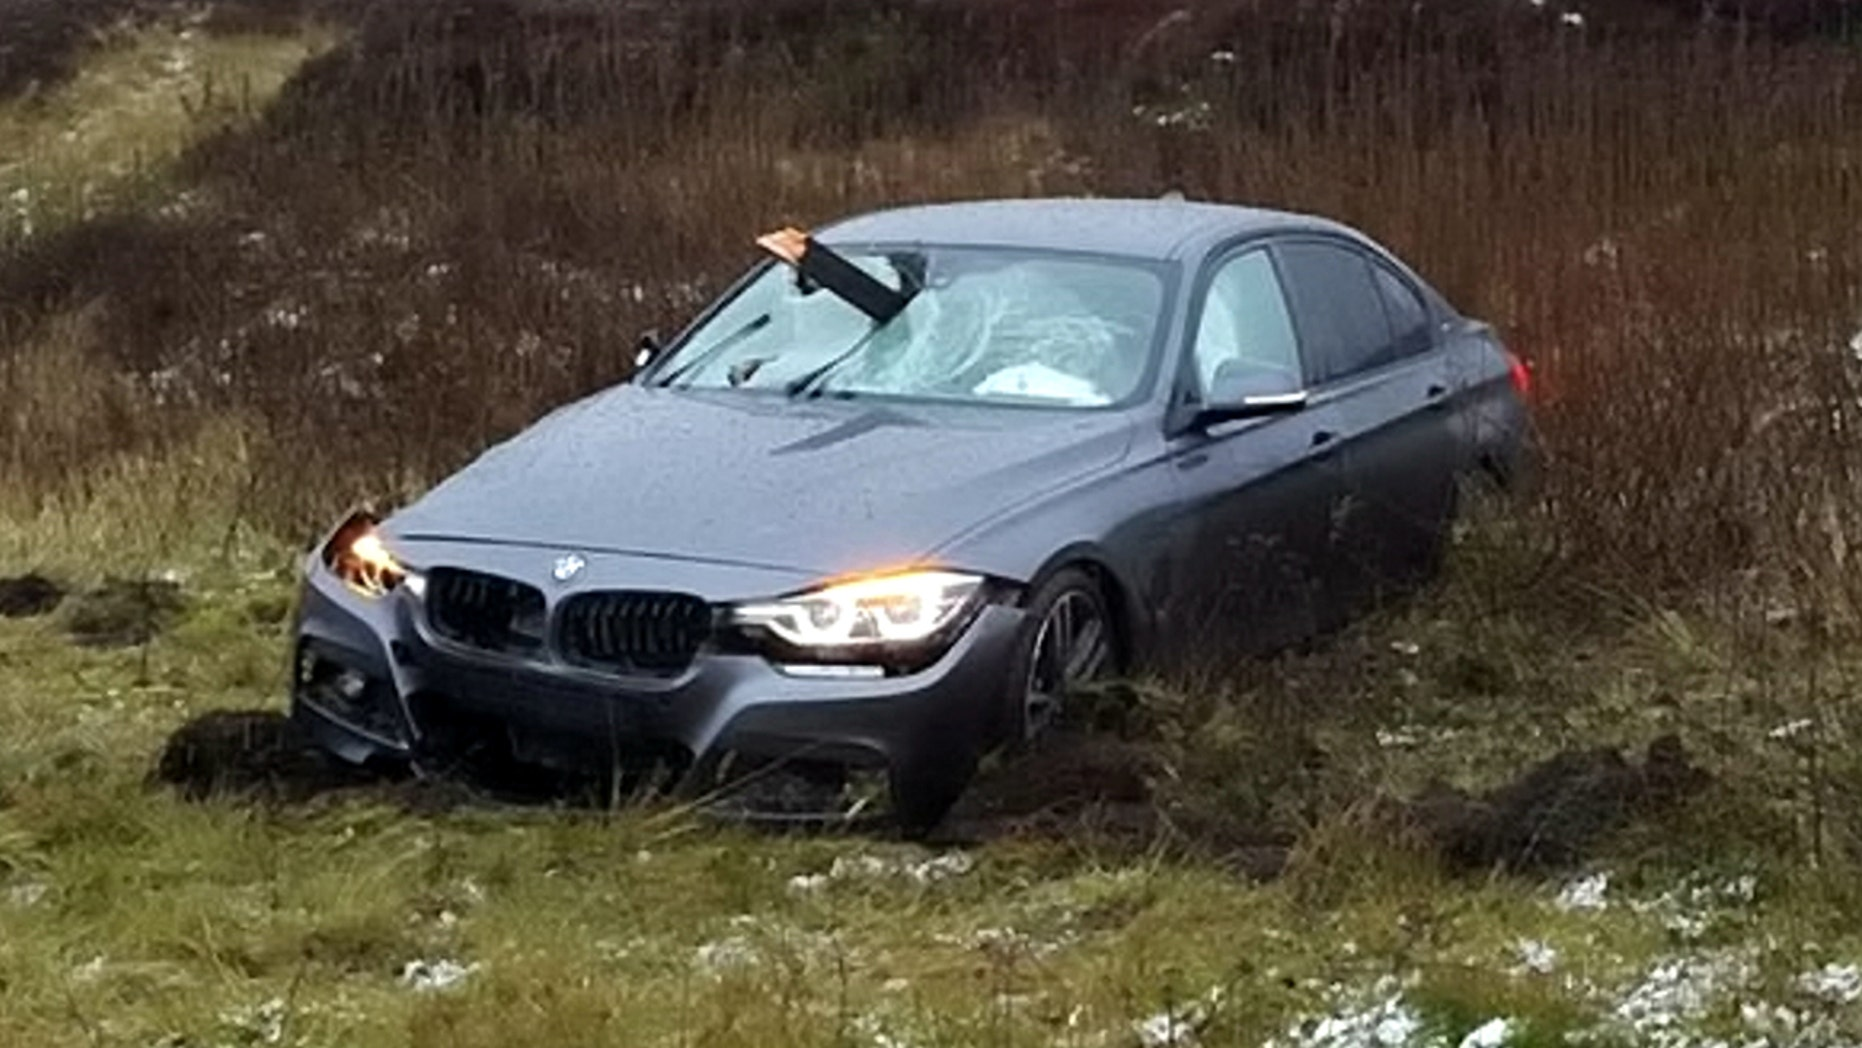 Car Impaled By Wood Post In Crash, Missing Driver By